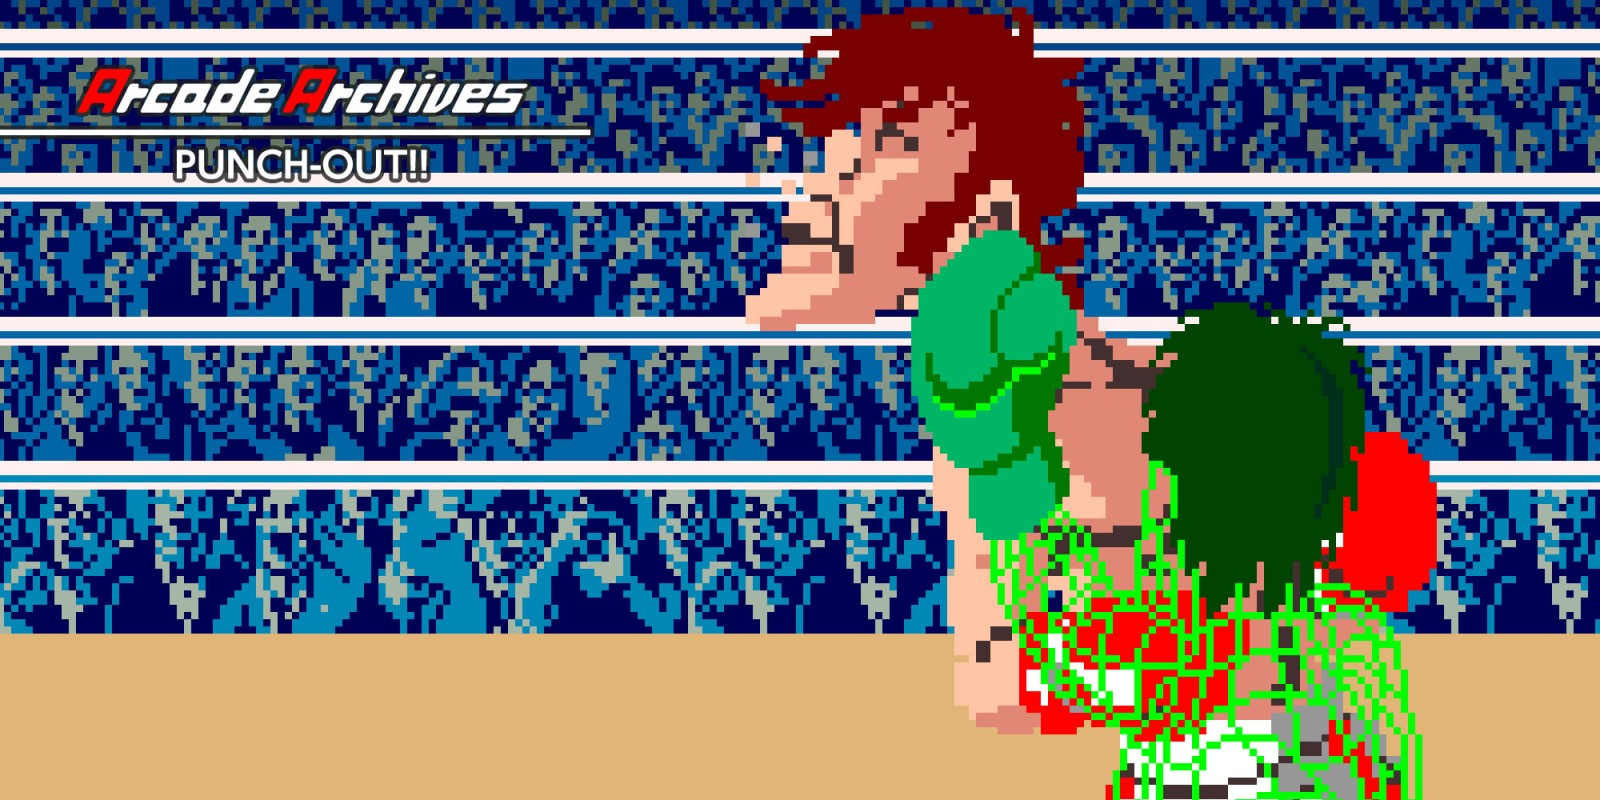 Arcade Archives PUNCH-OUT!! | Nintendo Switch download